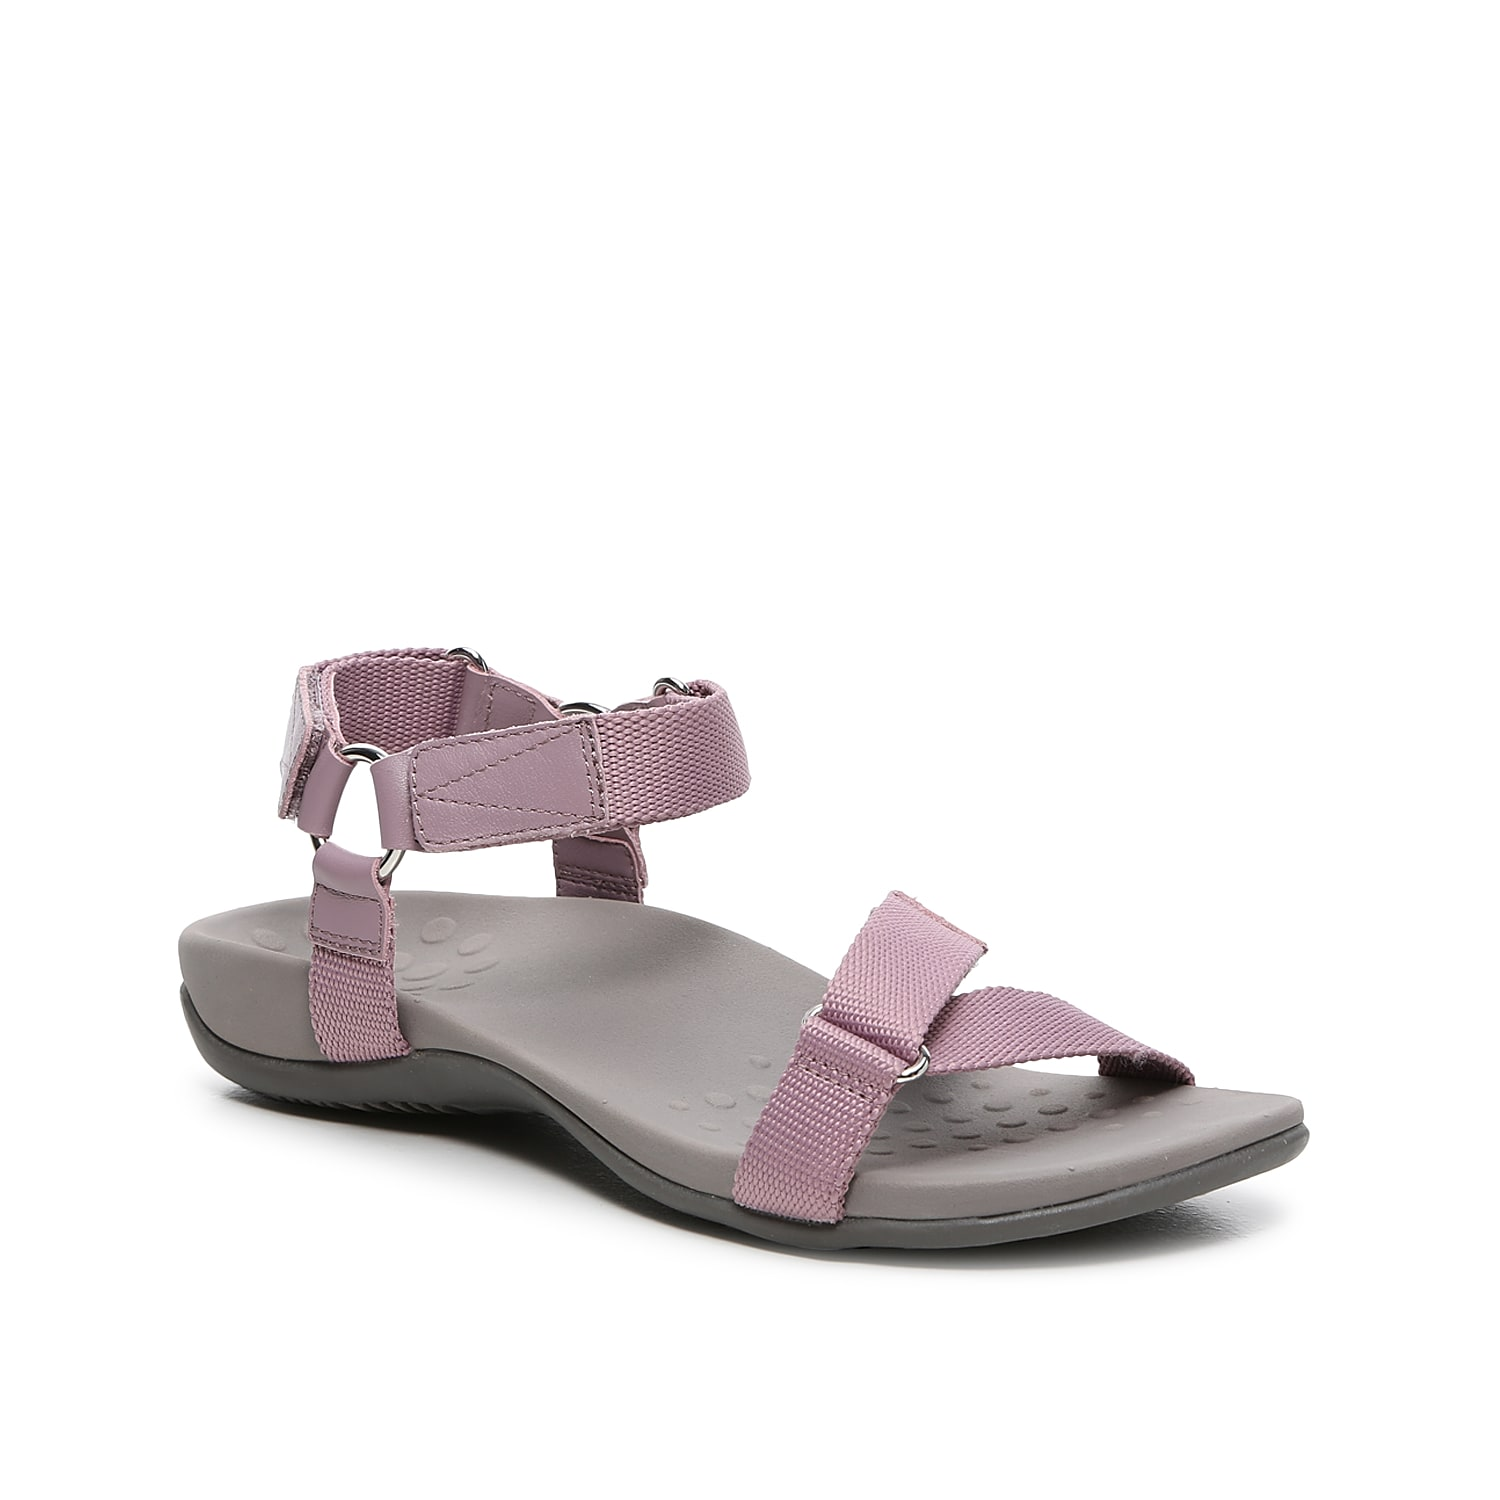 Go far distances in the Rest Candace sandal from Vionic. This pair features a sporty design and a contoured cushioned footbed to keep your feet feeling supported wherever you roam.